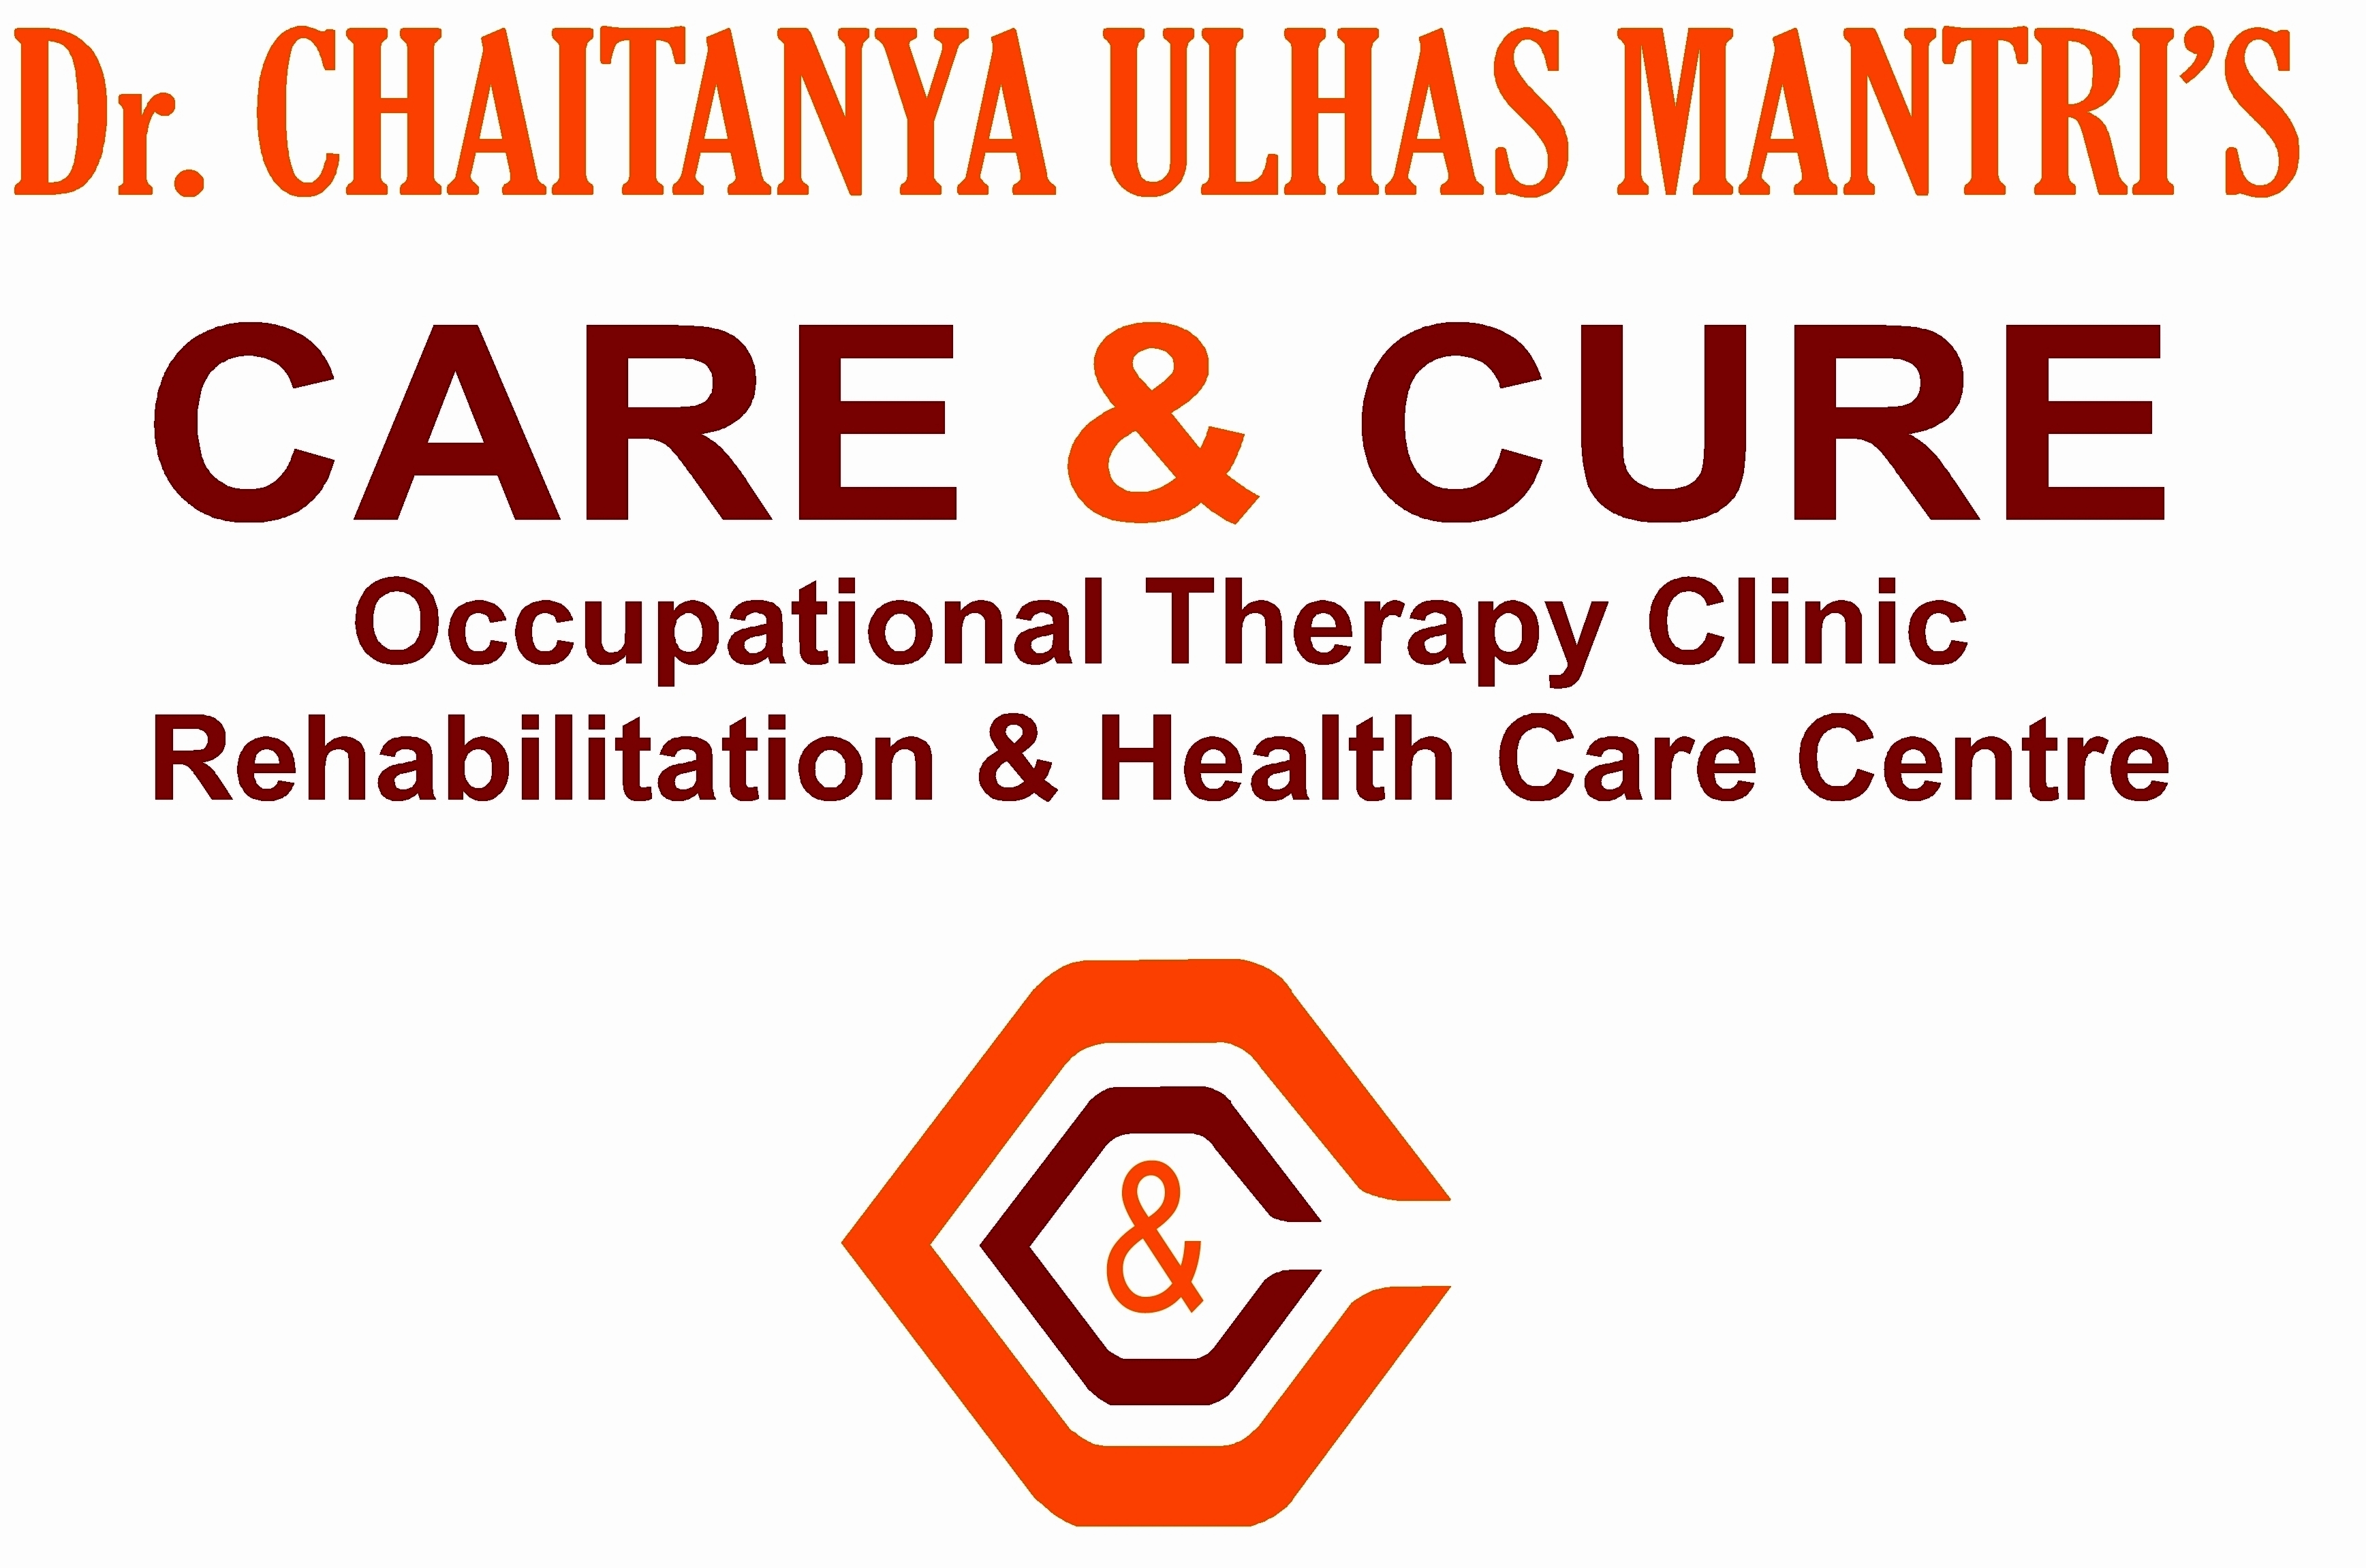 Dr.Chaitanya Ulhas Mantri's Care & Cure  Occupational Therapy Clinic Rehabilitation & Health Care Centre